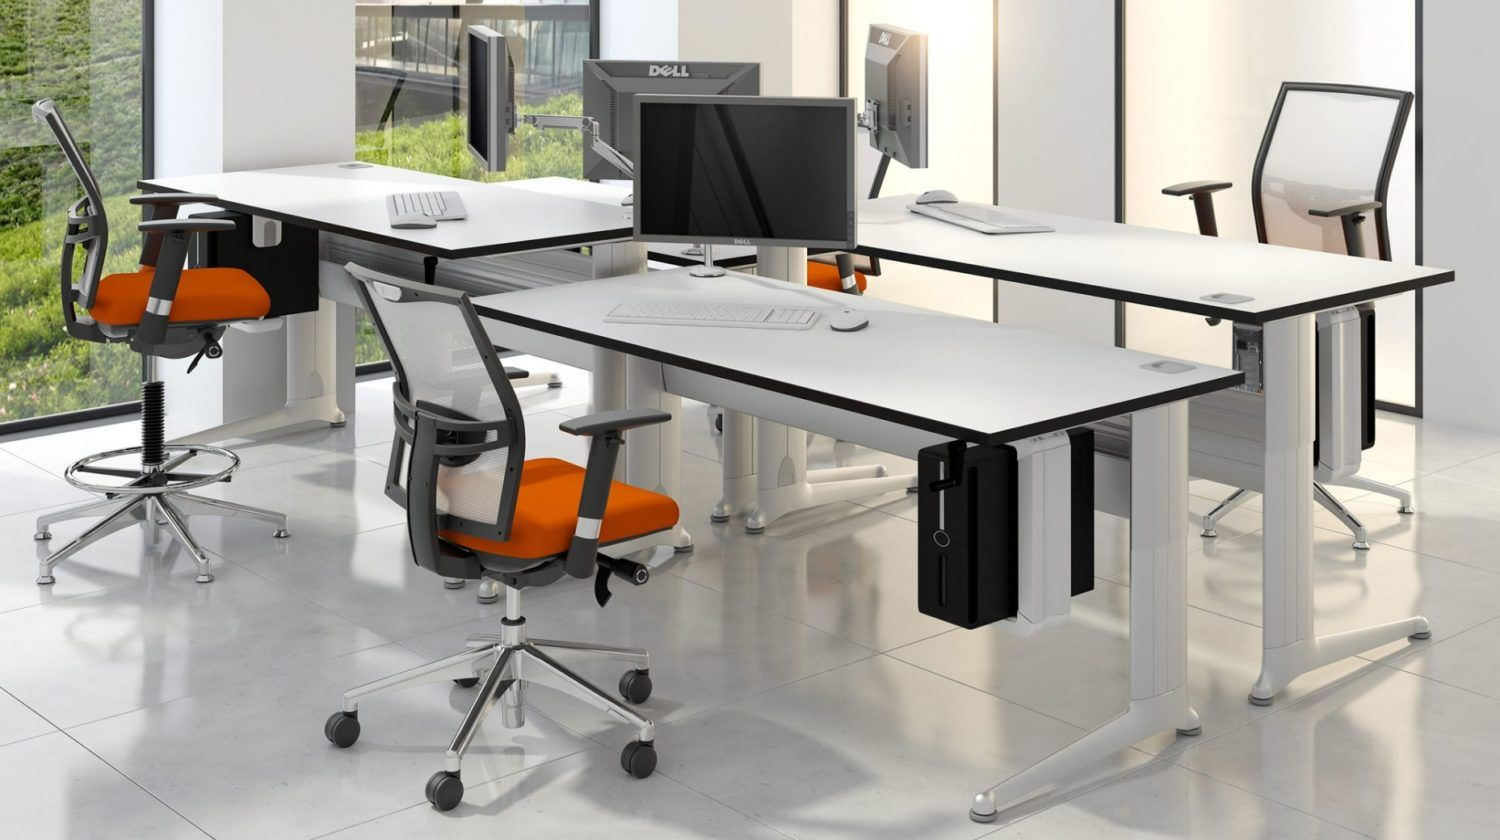 An Ergonomic Funky Orange Office Chair And White Office Desking Corporate Furniture Install Adjustable Office Desks Office Furniture Design Office Desk Designs